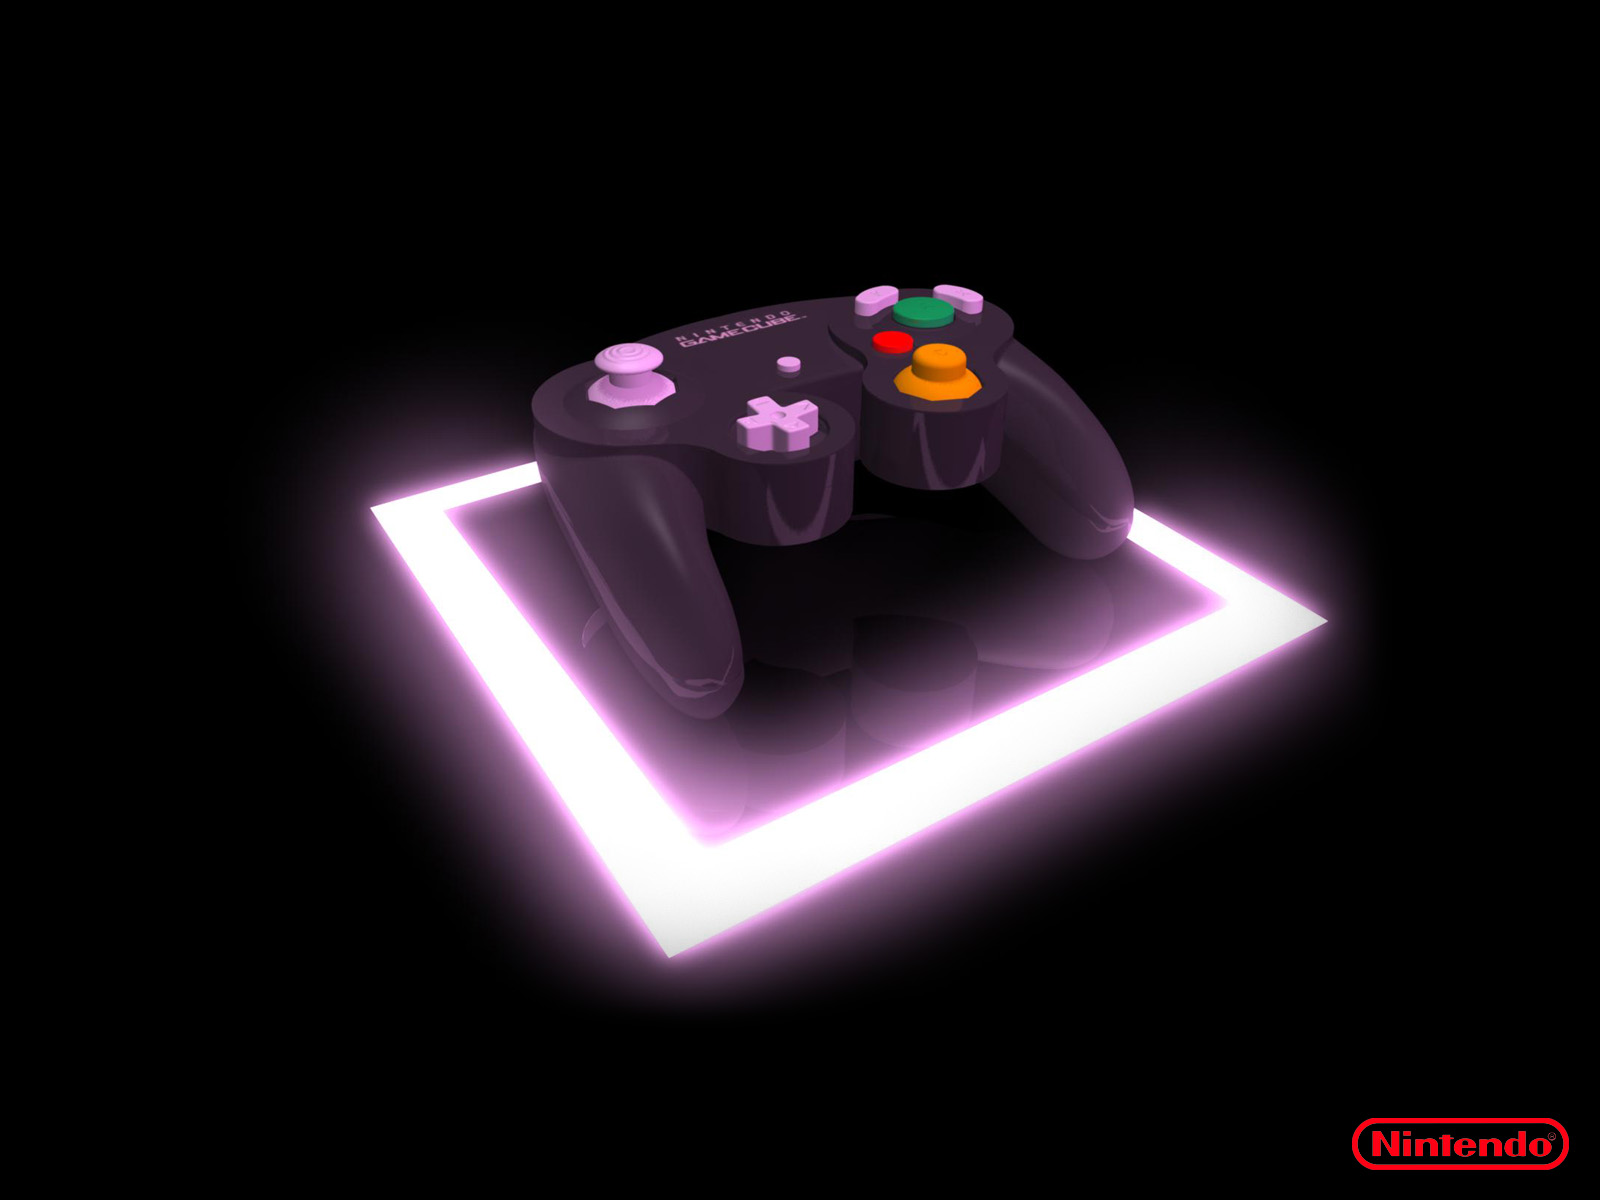 """Mysterious"" Joystick by w0lfb0i"